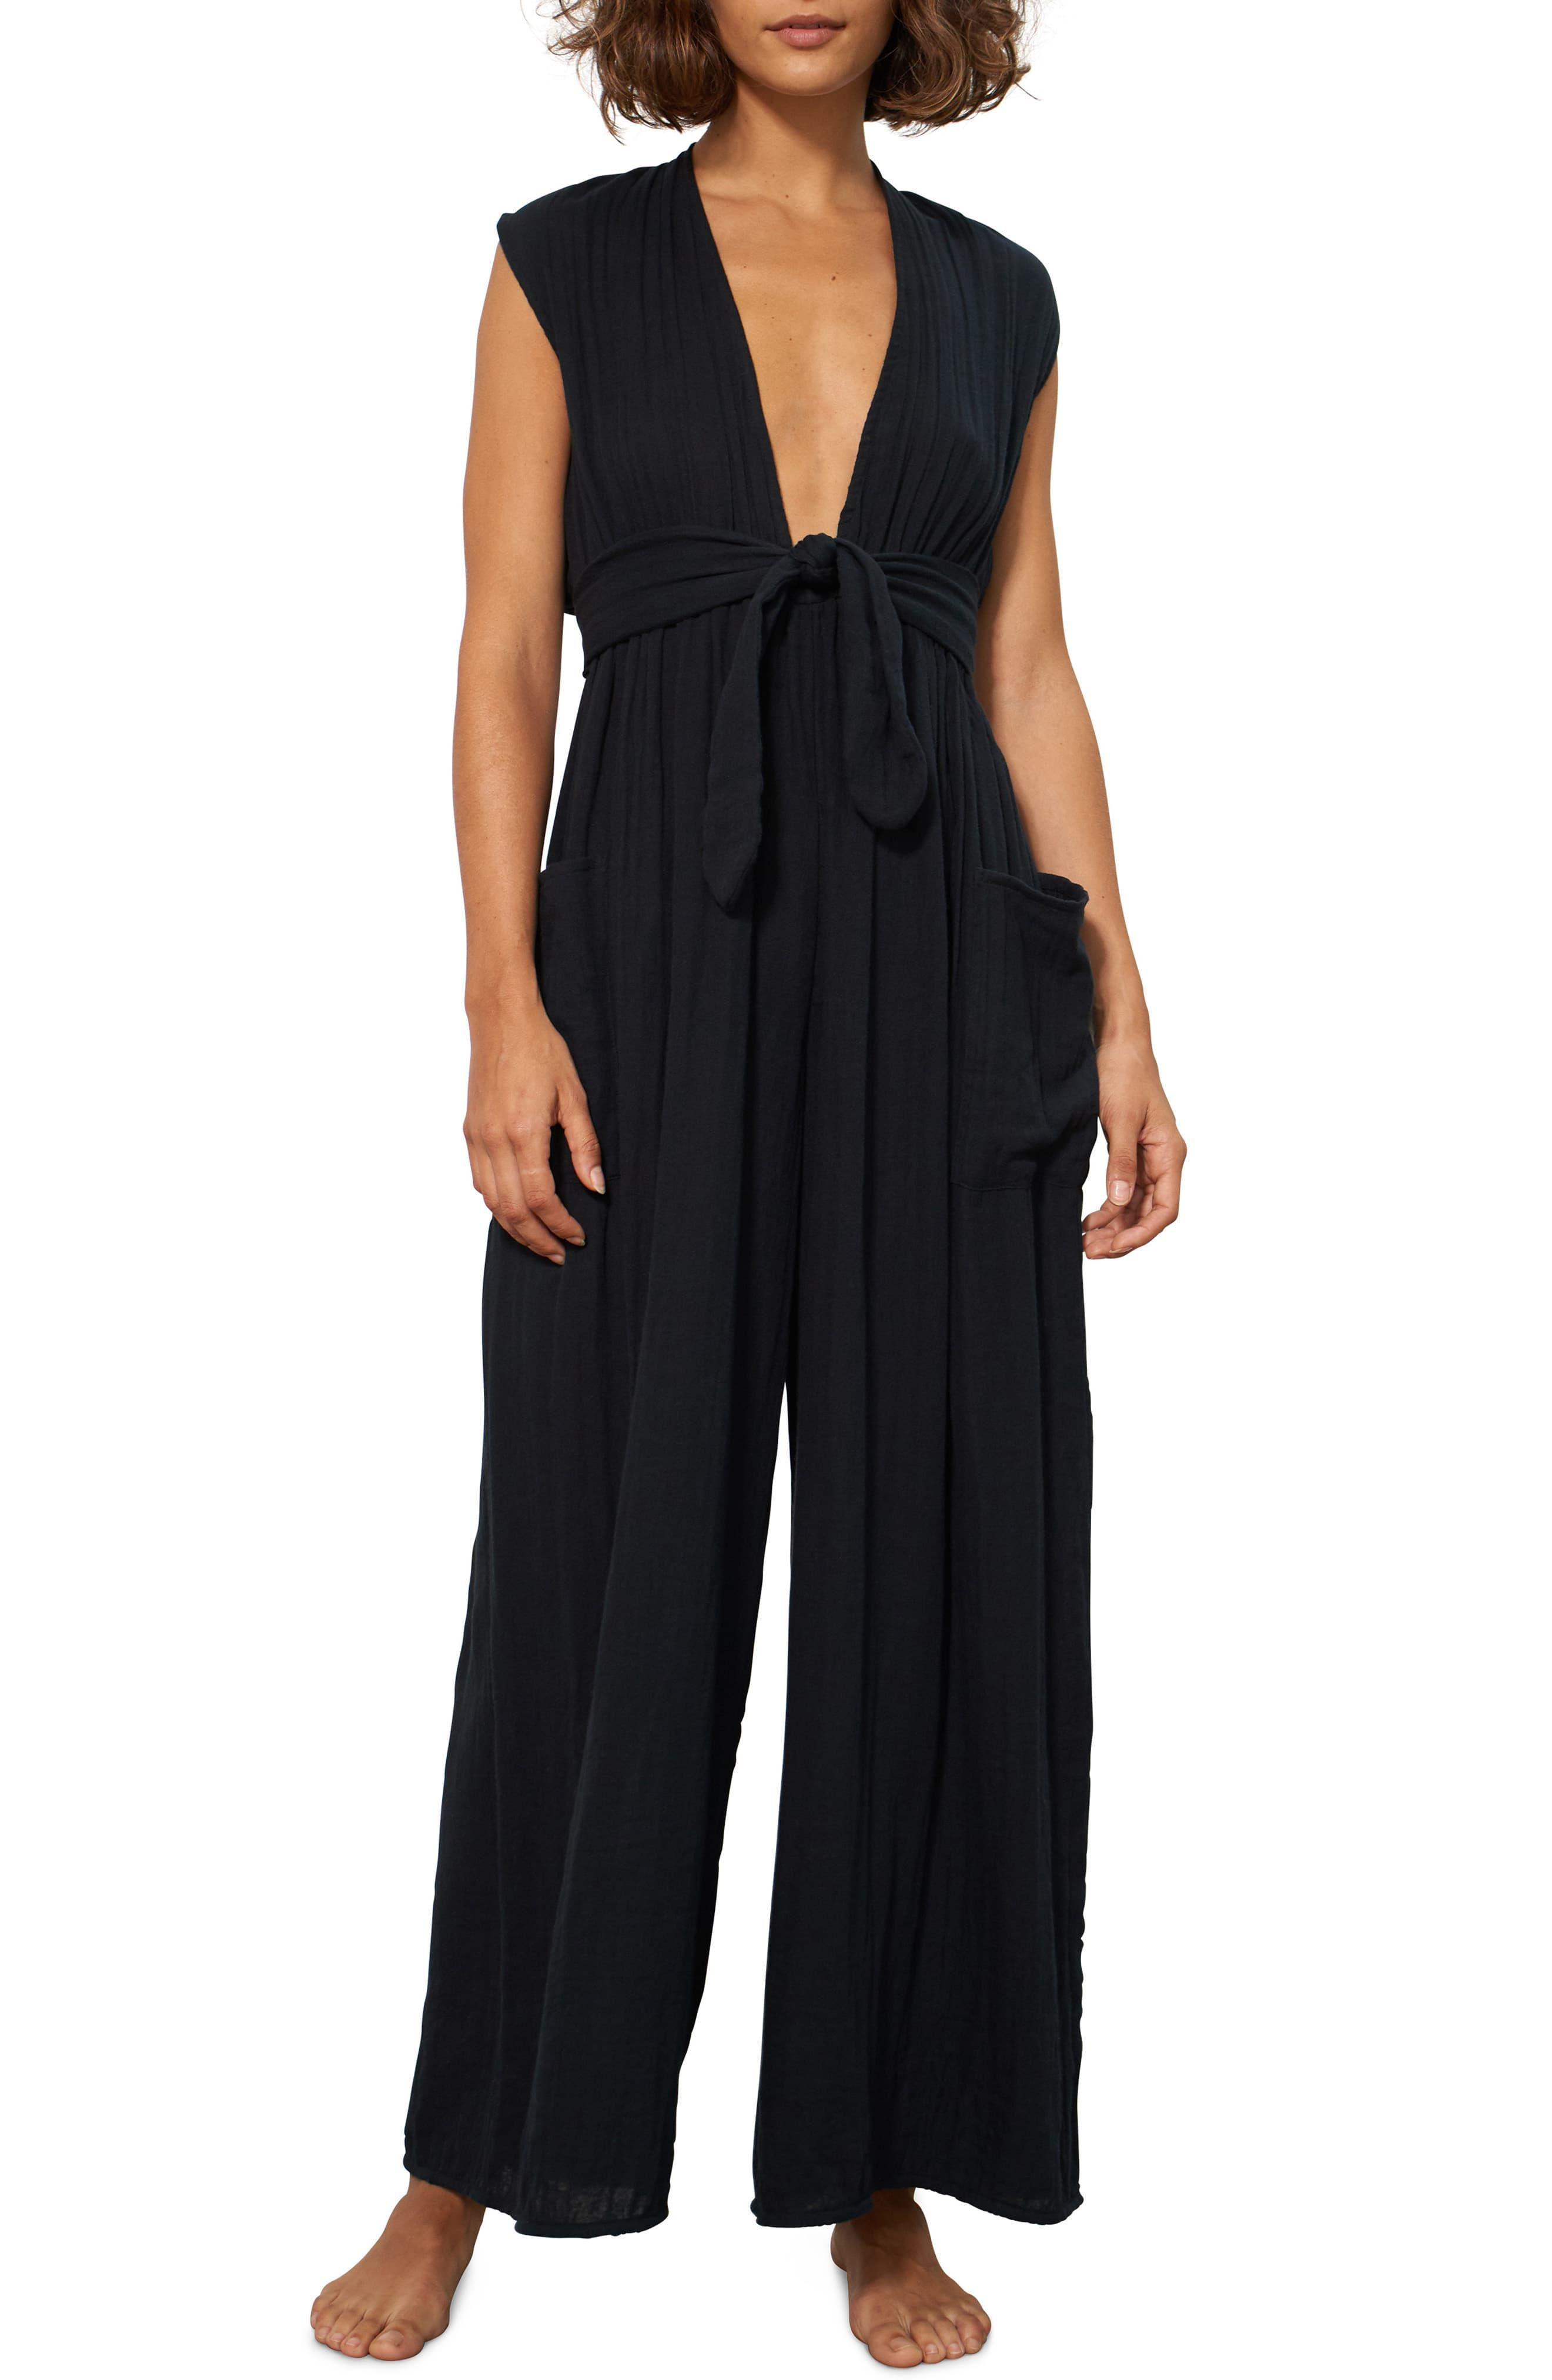 0267954341 Women's Mara Hoffman Whitney Organic Cotton Cover-Up Jumpsuit, Size X-Large  - Black